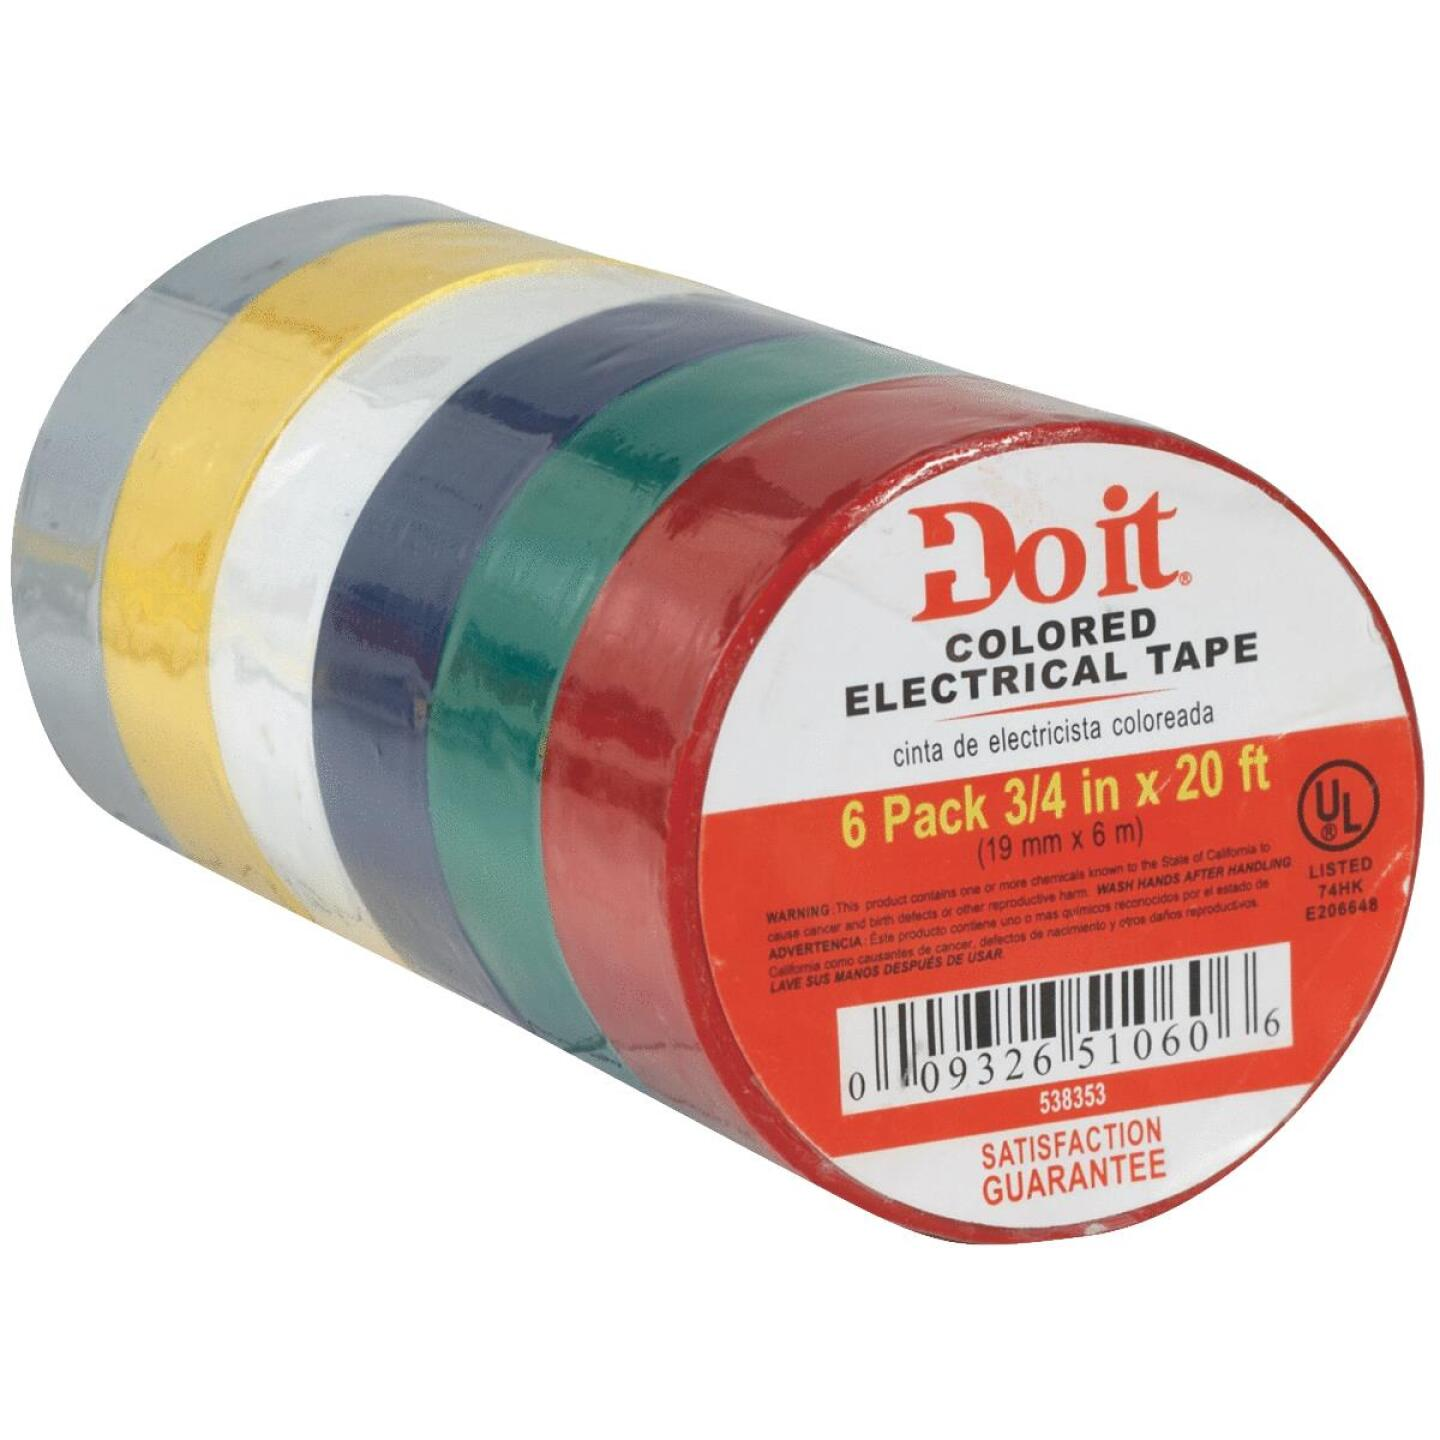 Do it General Purpose 3/4 In. x 20 Ft. Assorted Color Electrical Tape, (6-Pack) Image 4